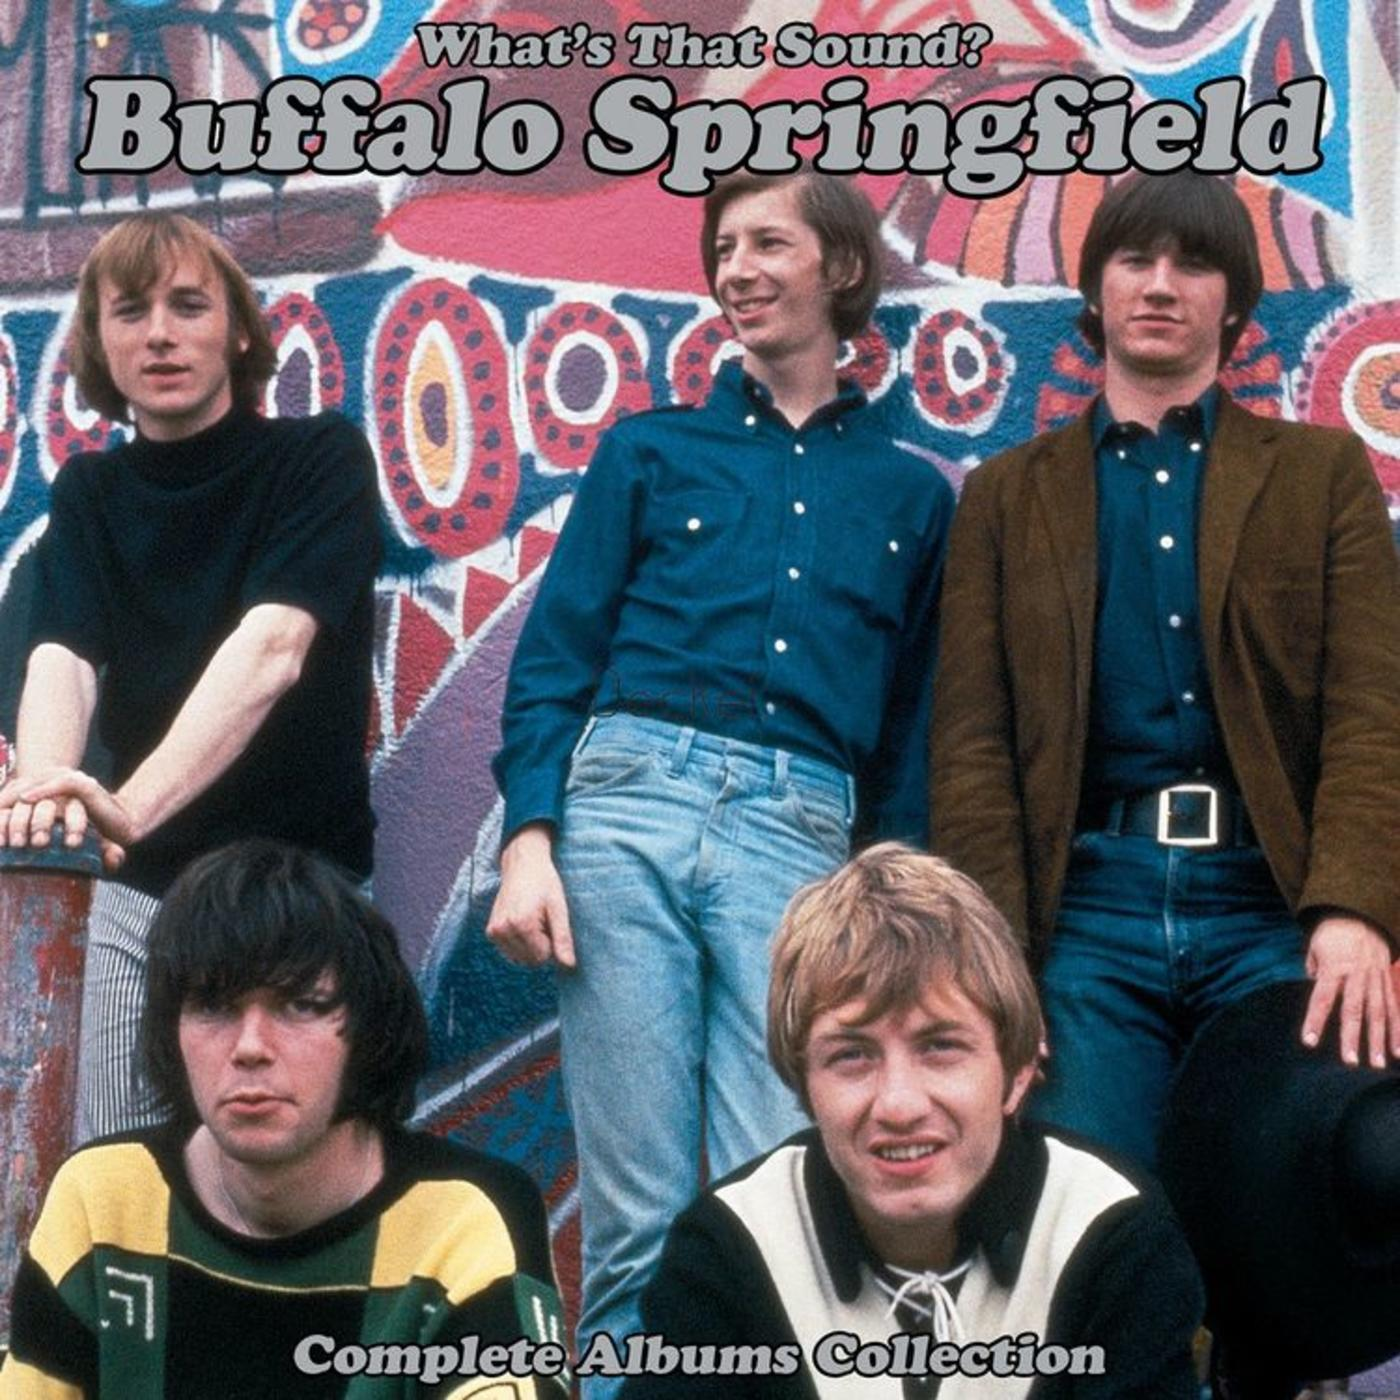 Buffalo Springfield - What's That Sound? - Complete Albums Collection